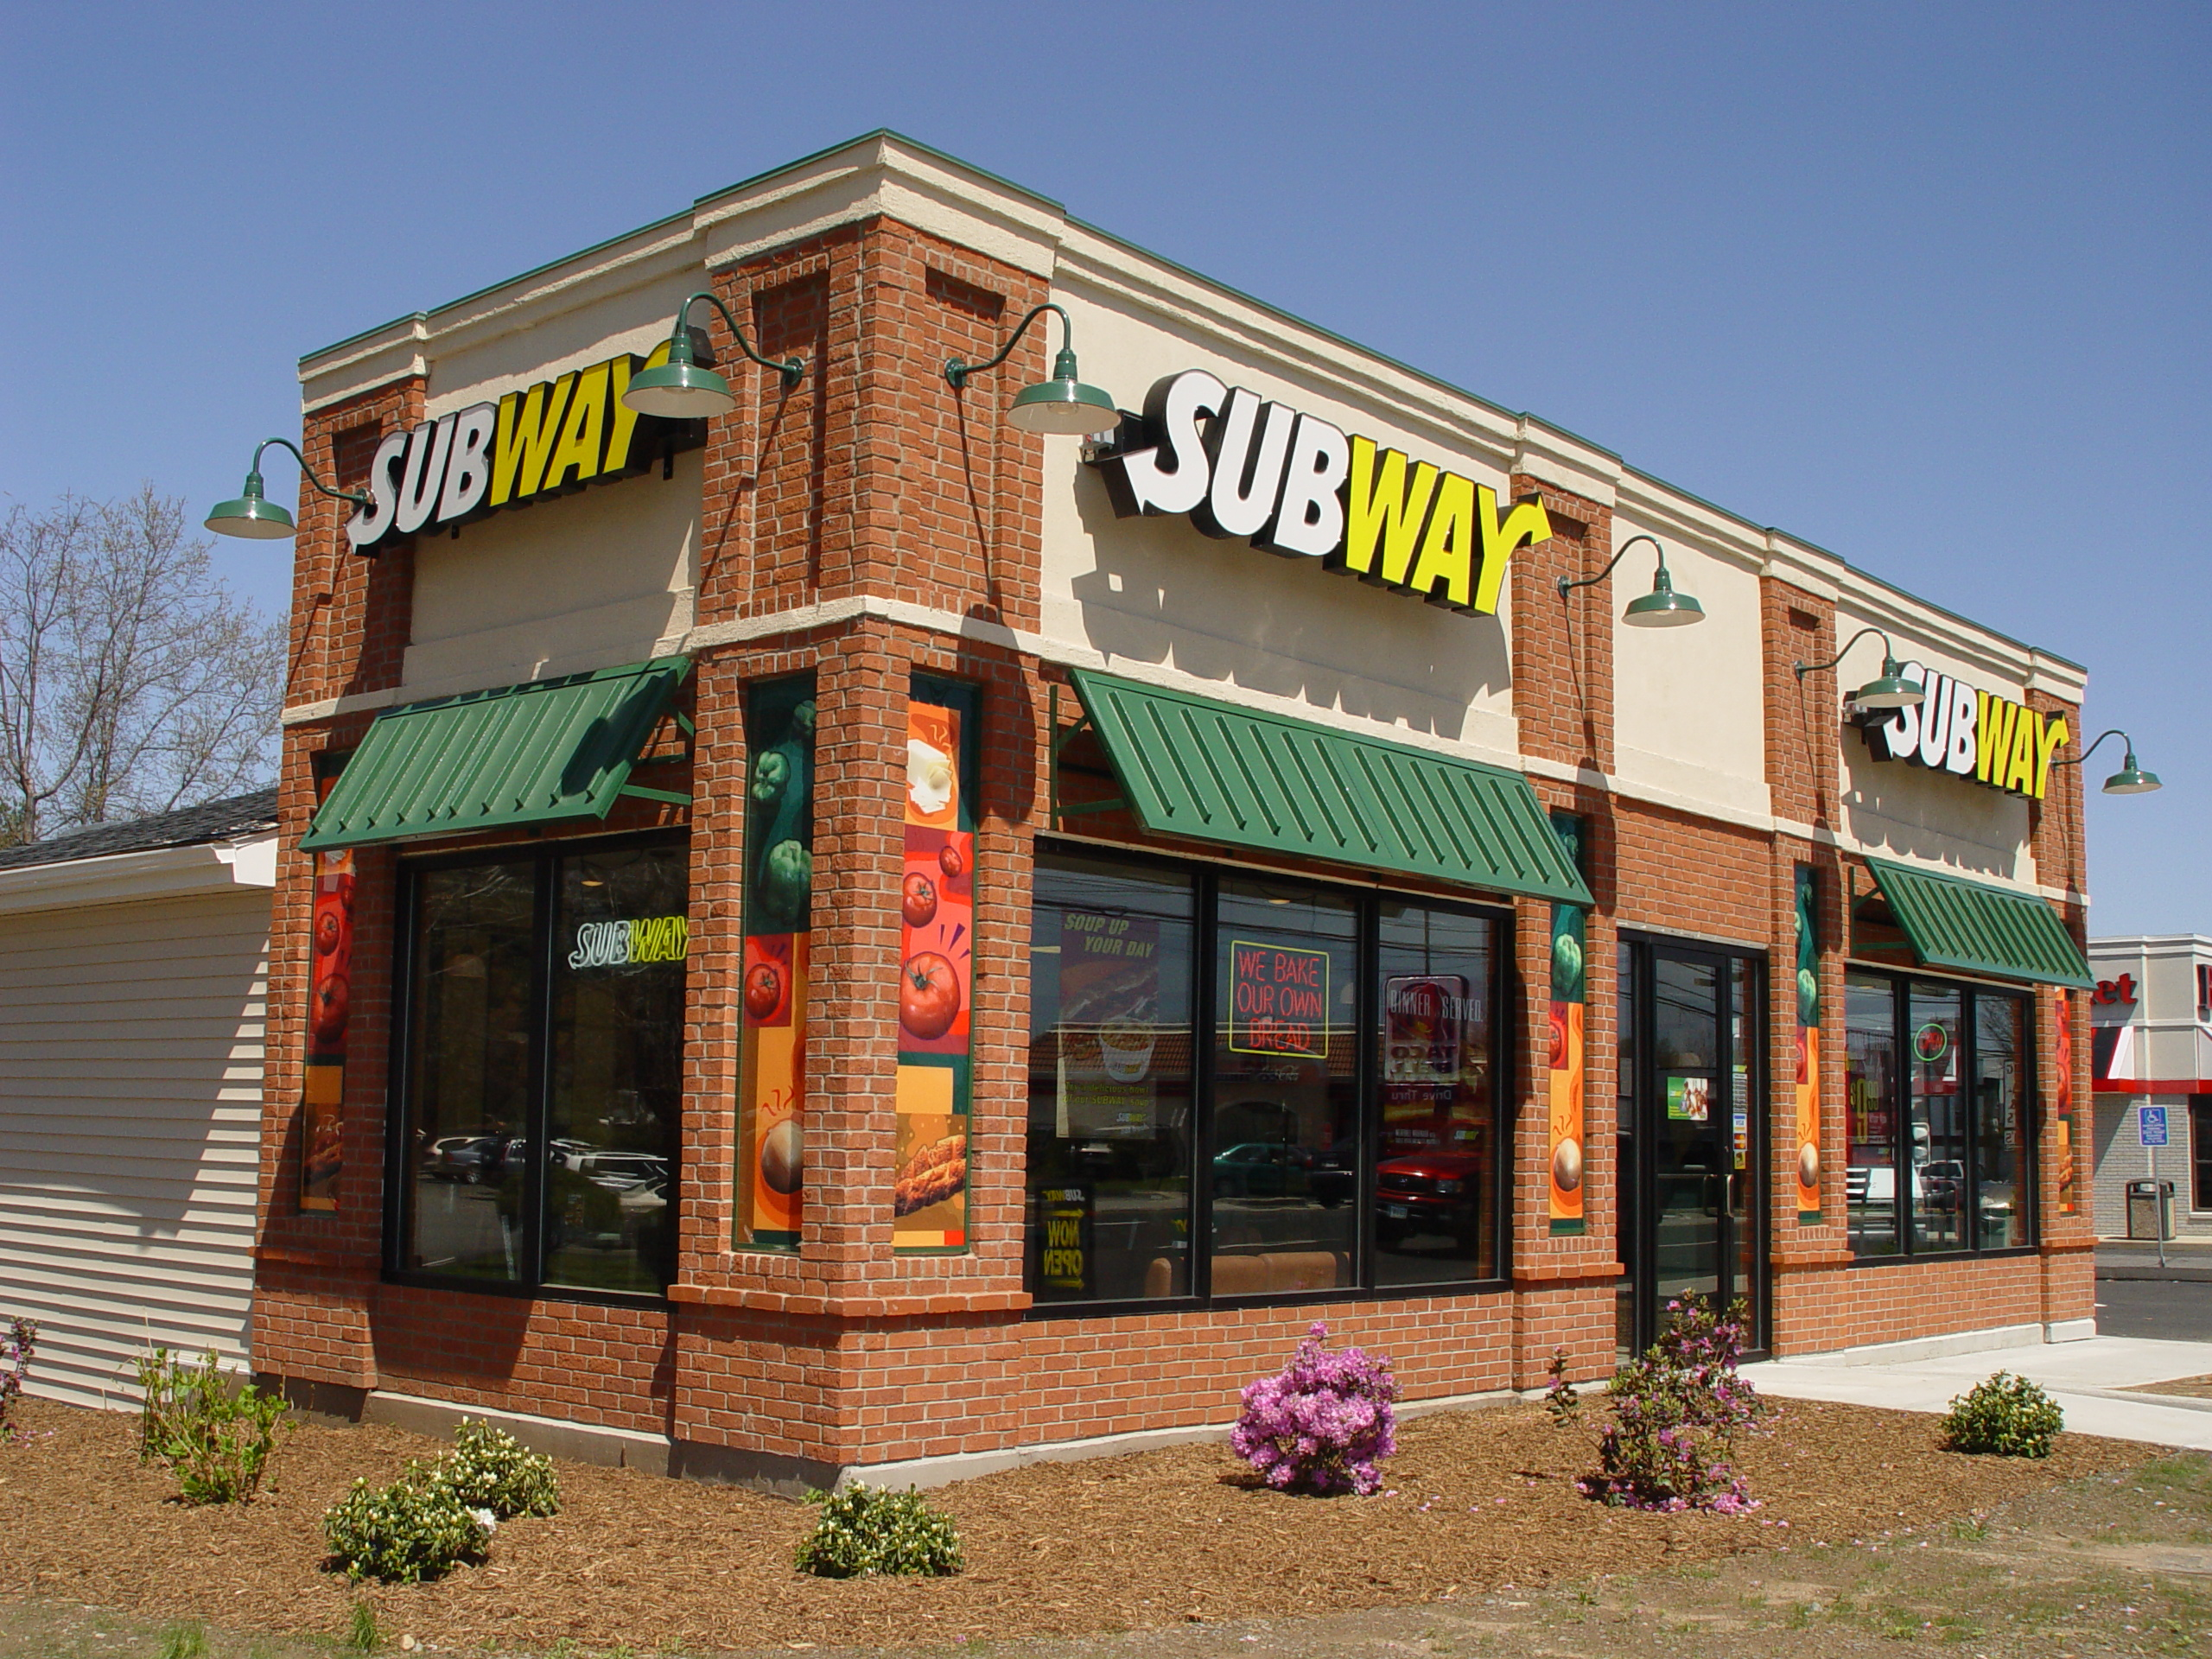 Subway, Auburn IN